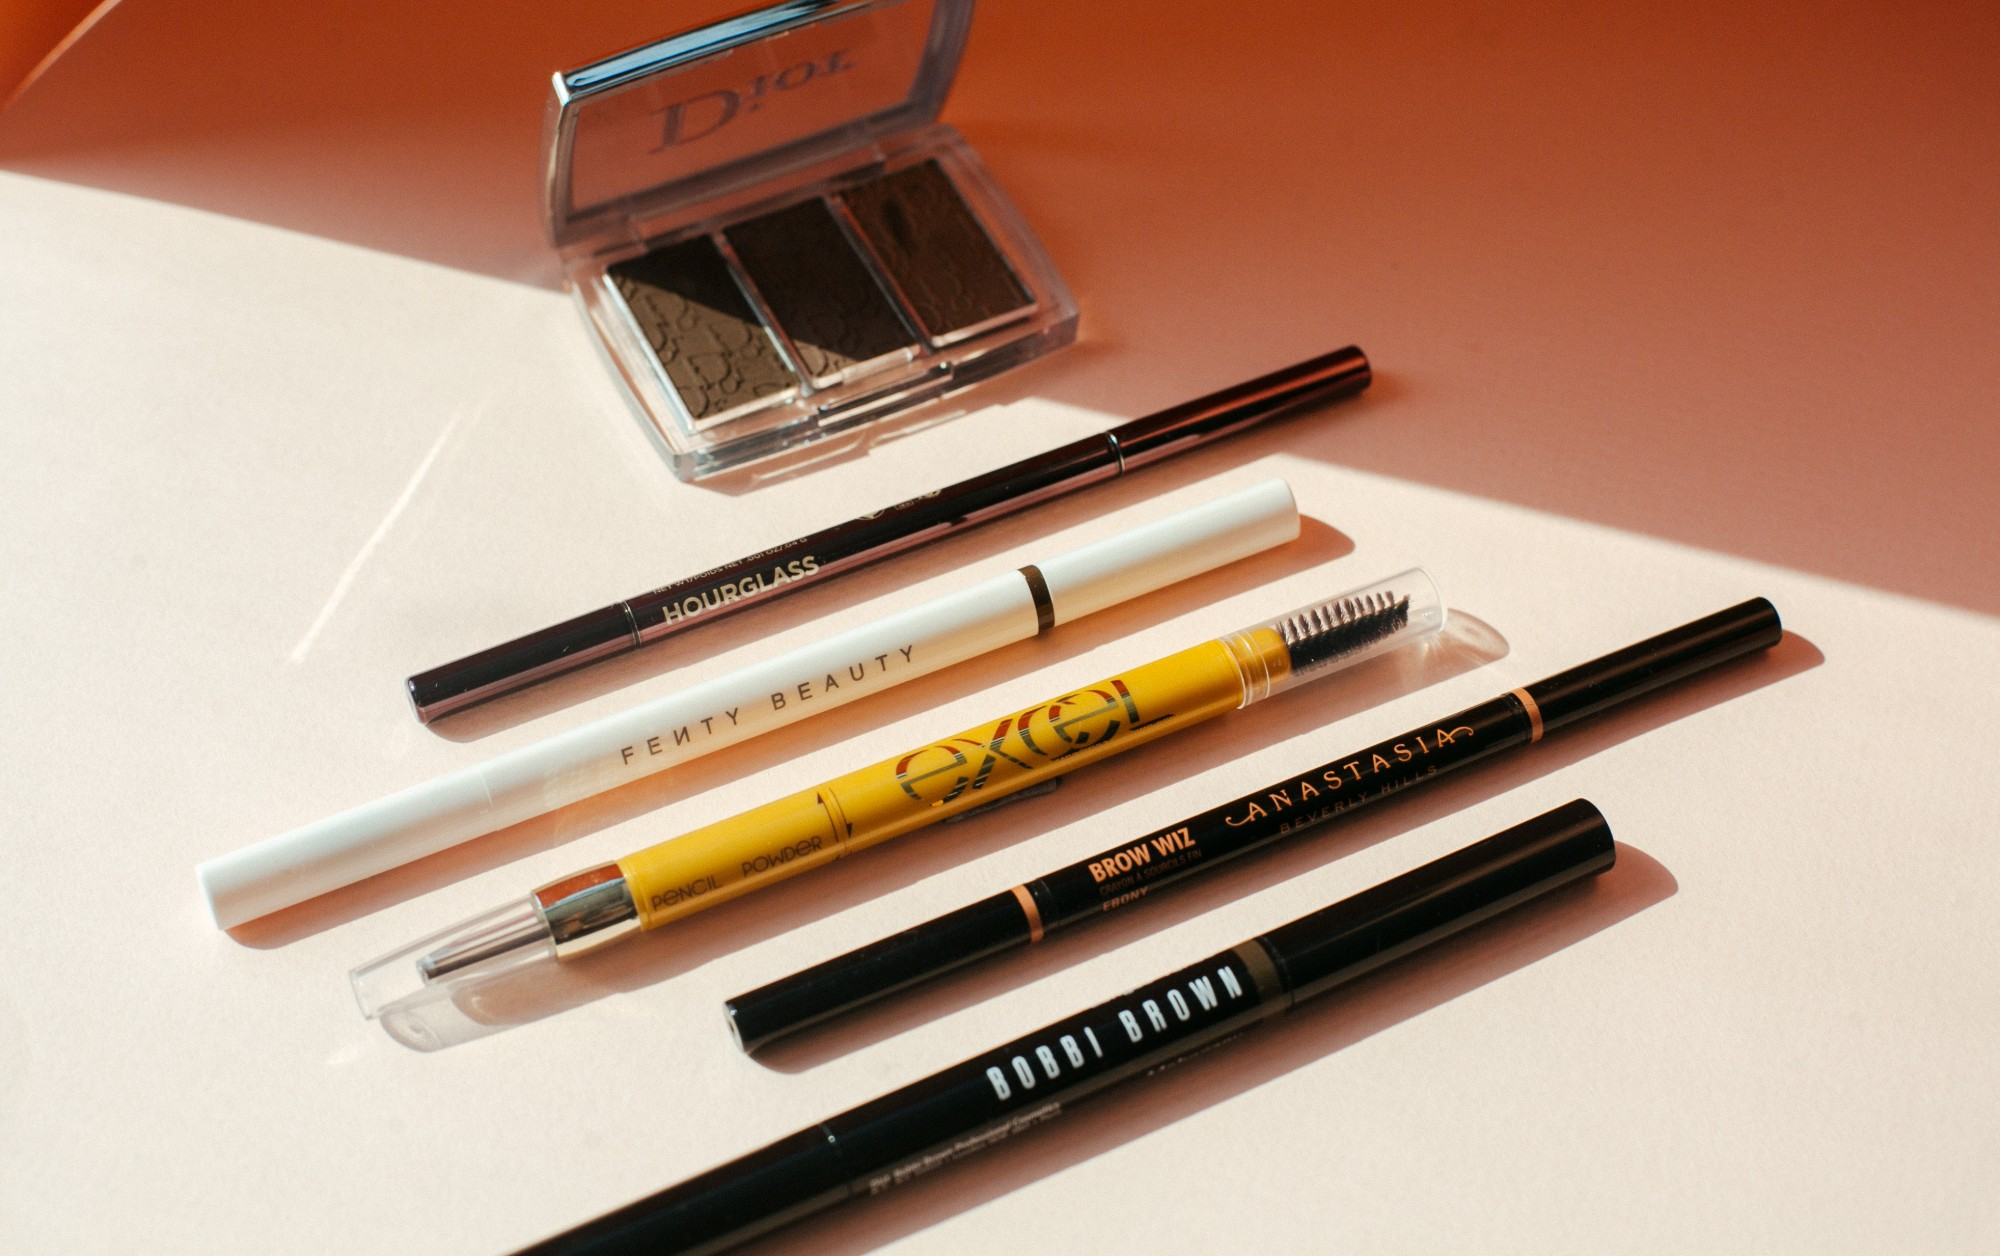 Top 6 Eyebrow Products We Recommend This 2019